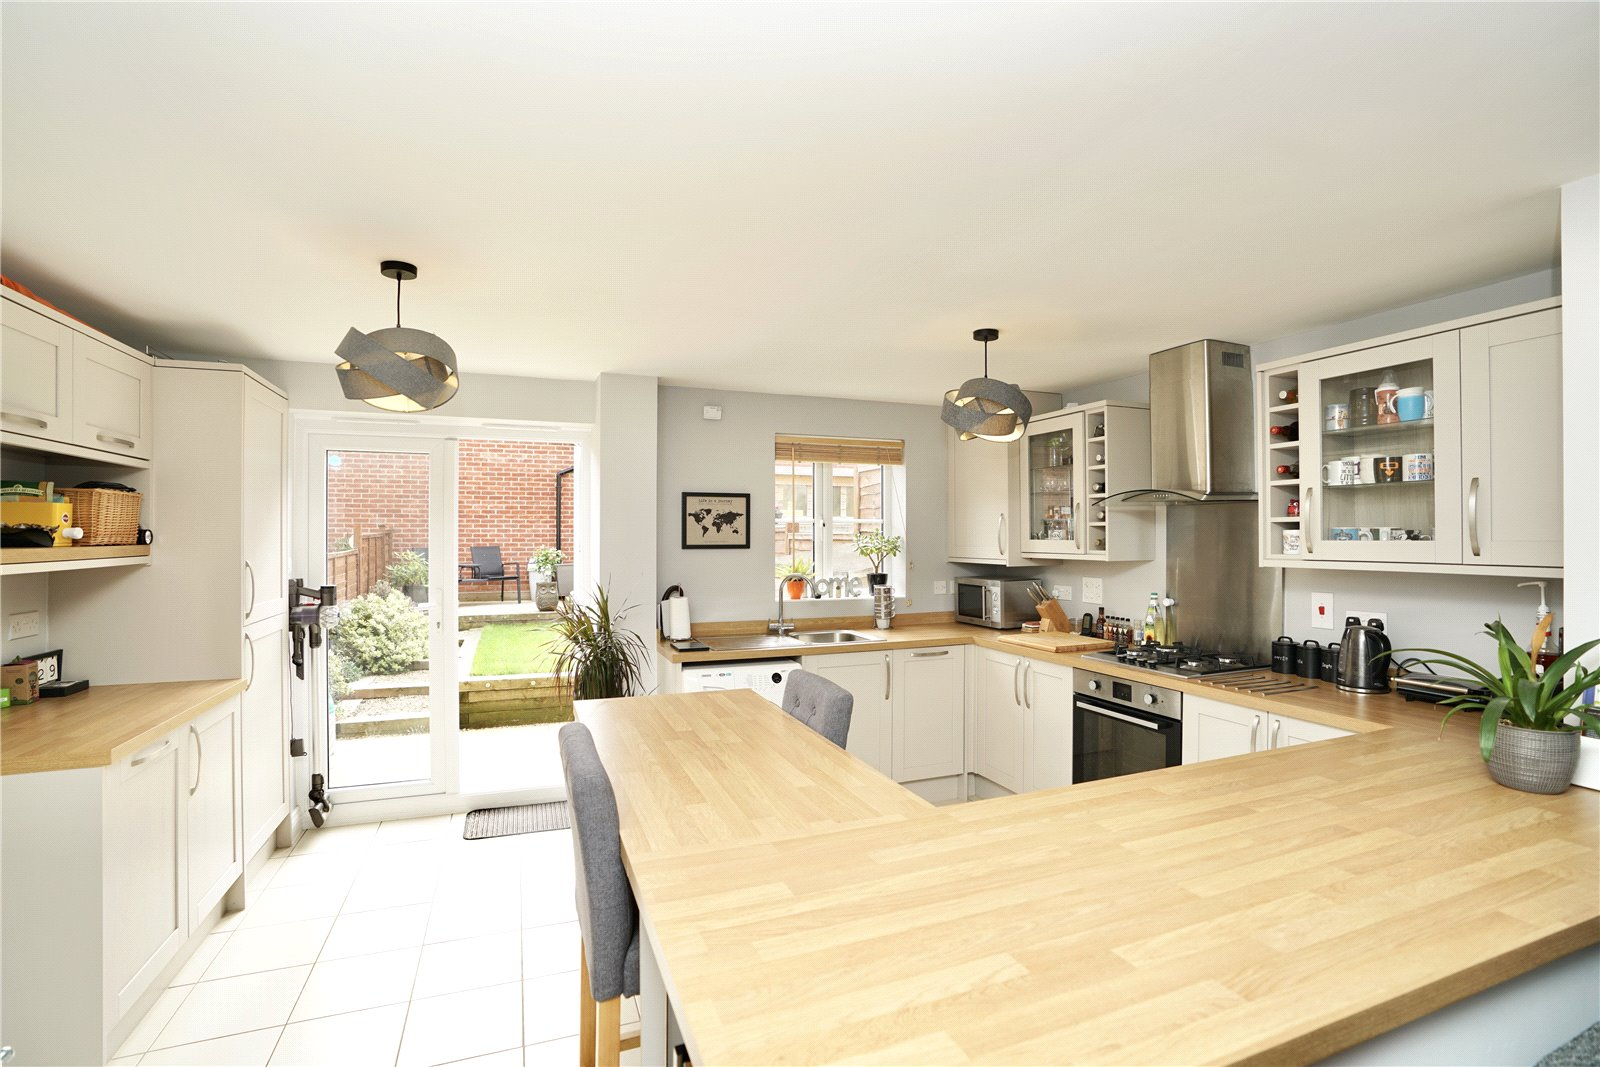 3 bed house for sale in Papworth Everard, CB23 3AT, CB23